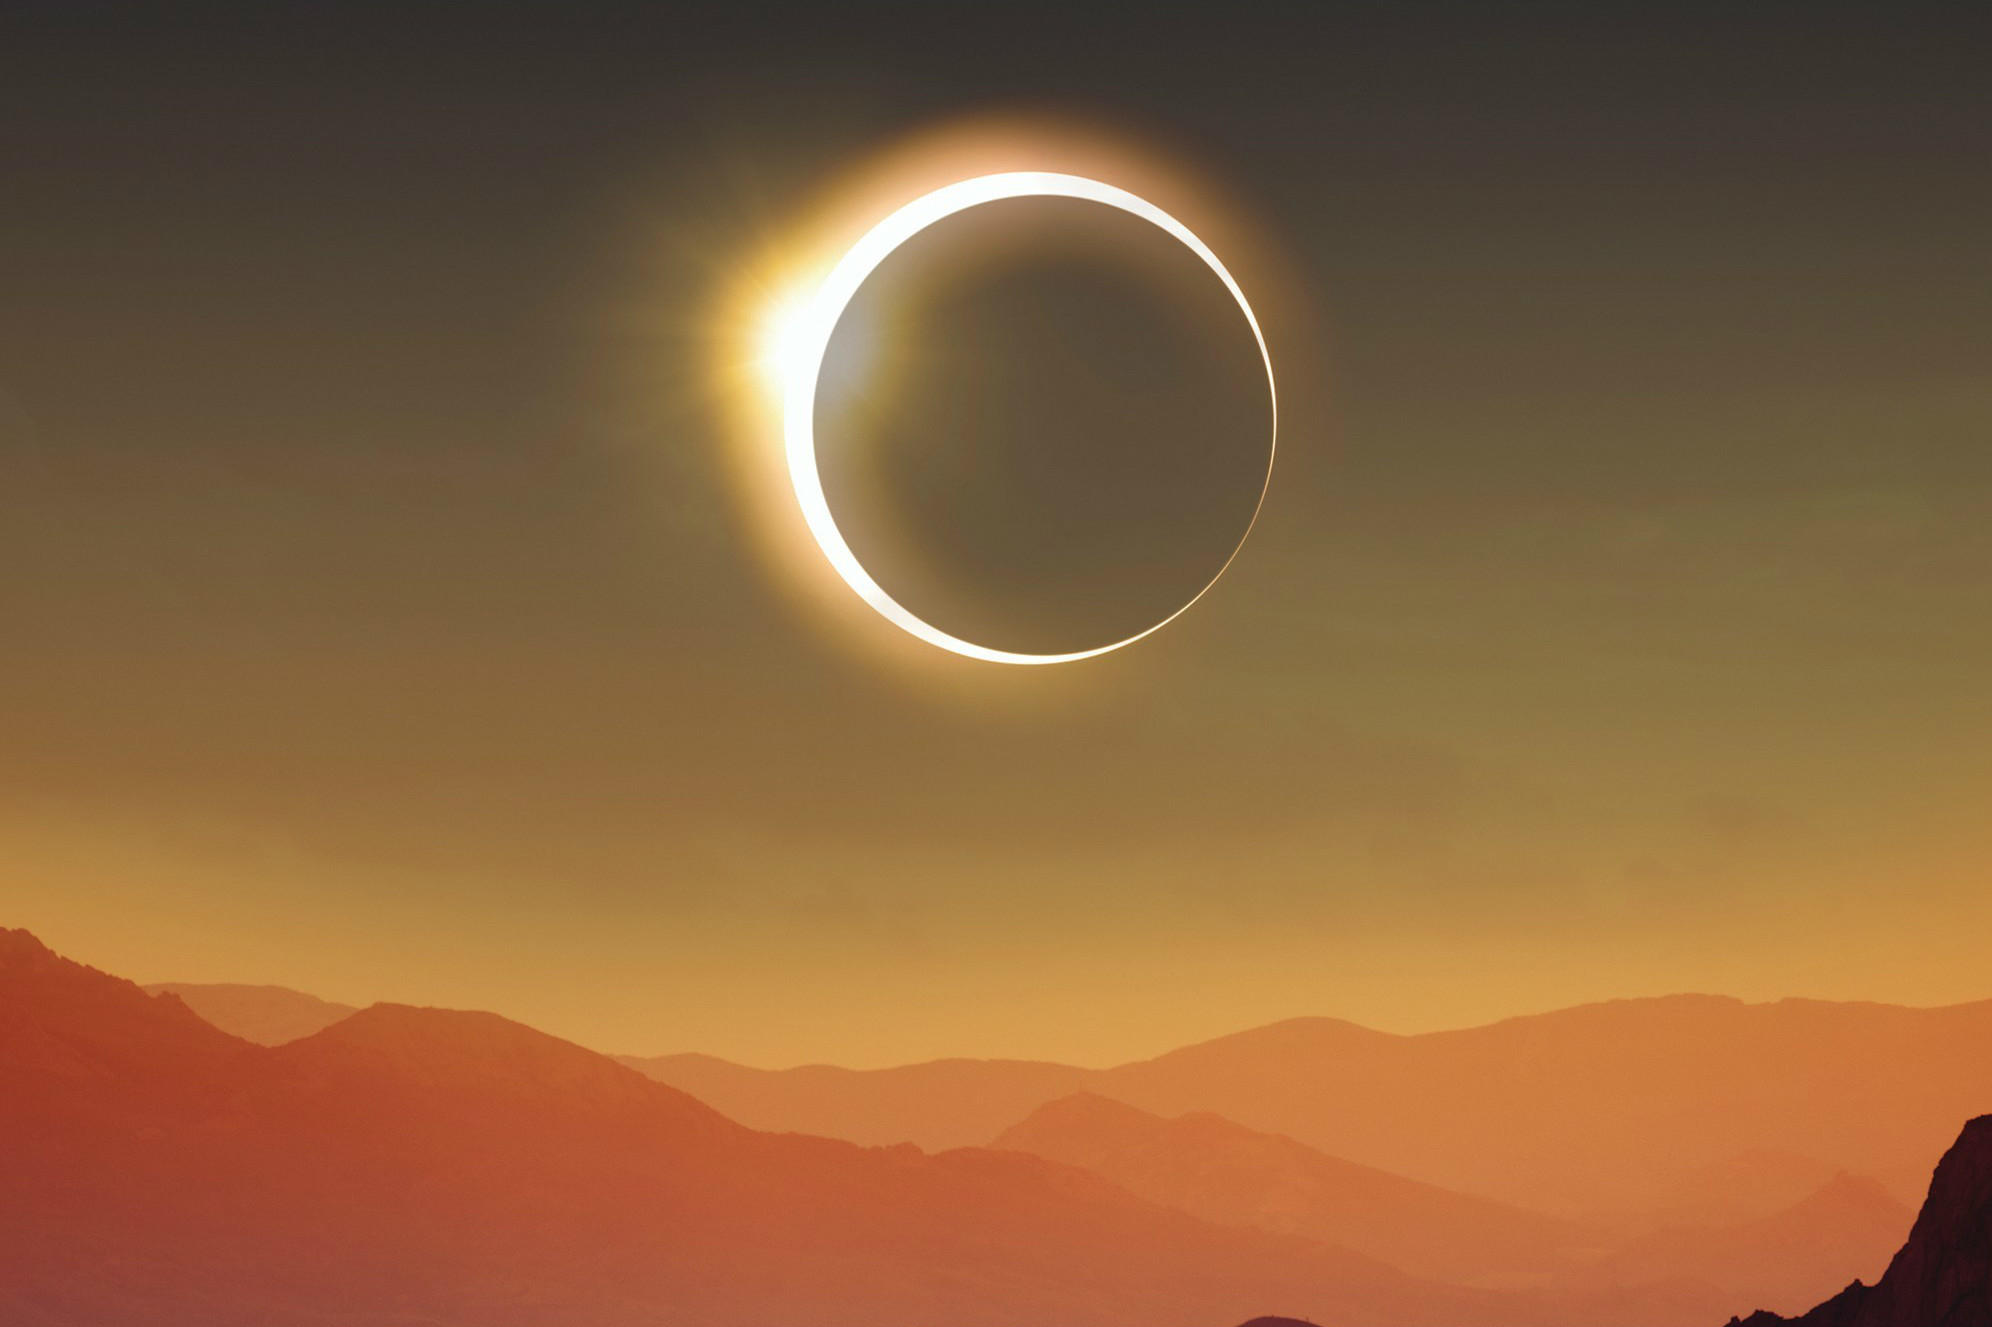 weather-channel-solar-eclipse-image